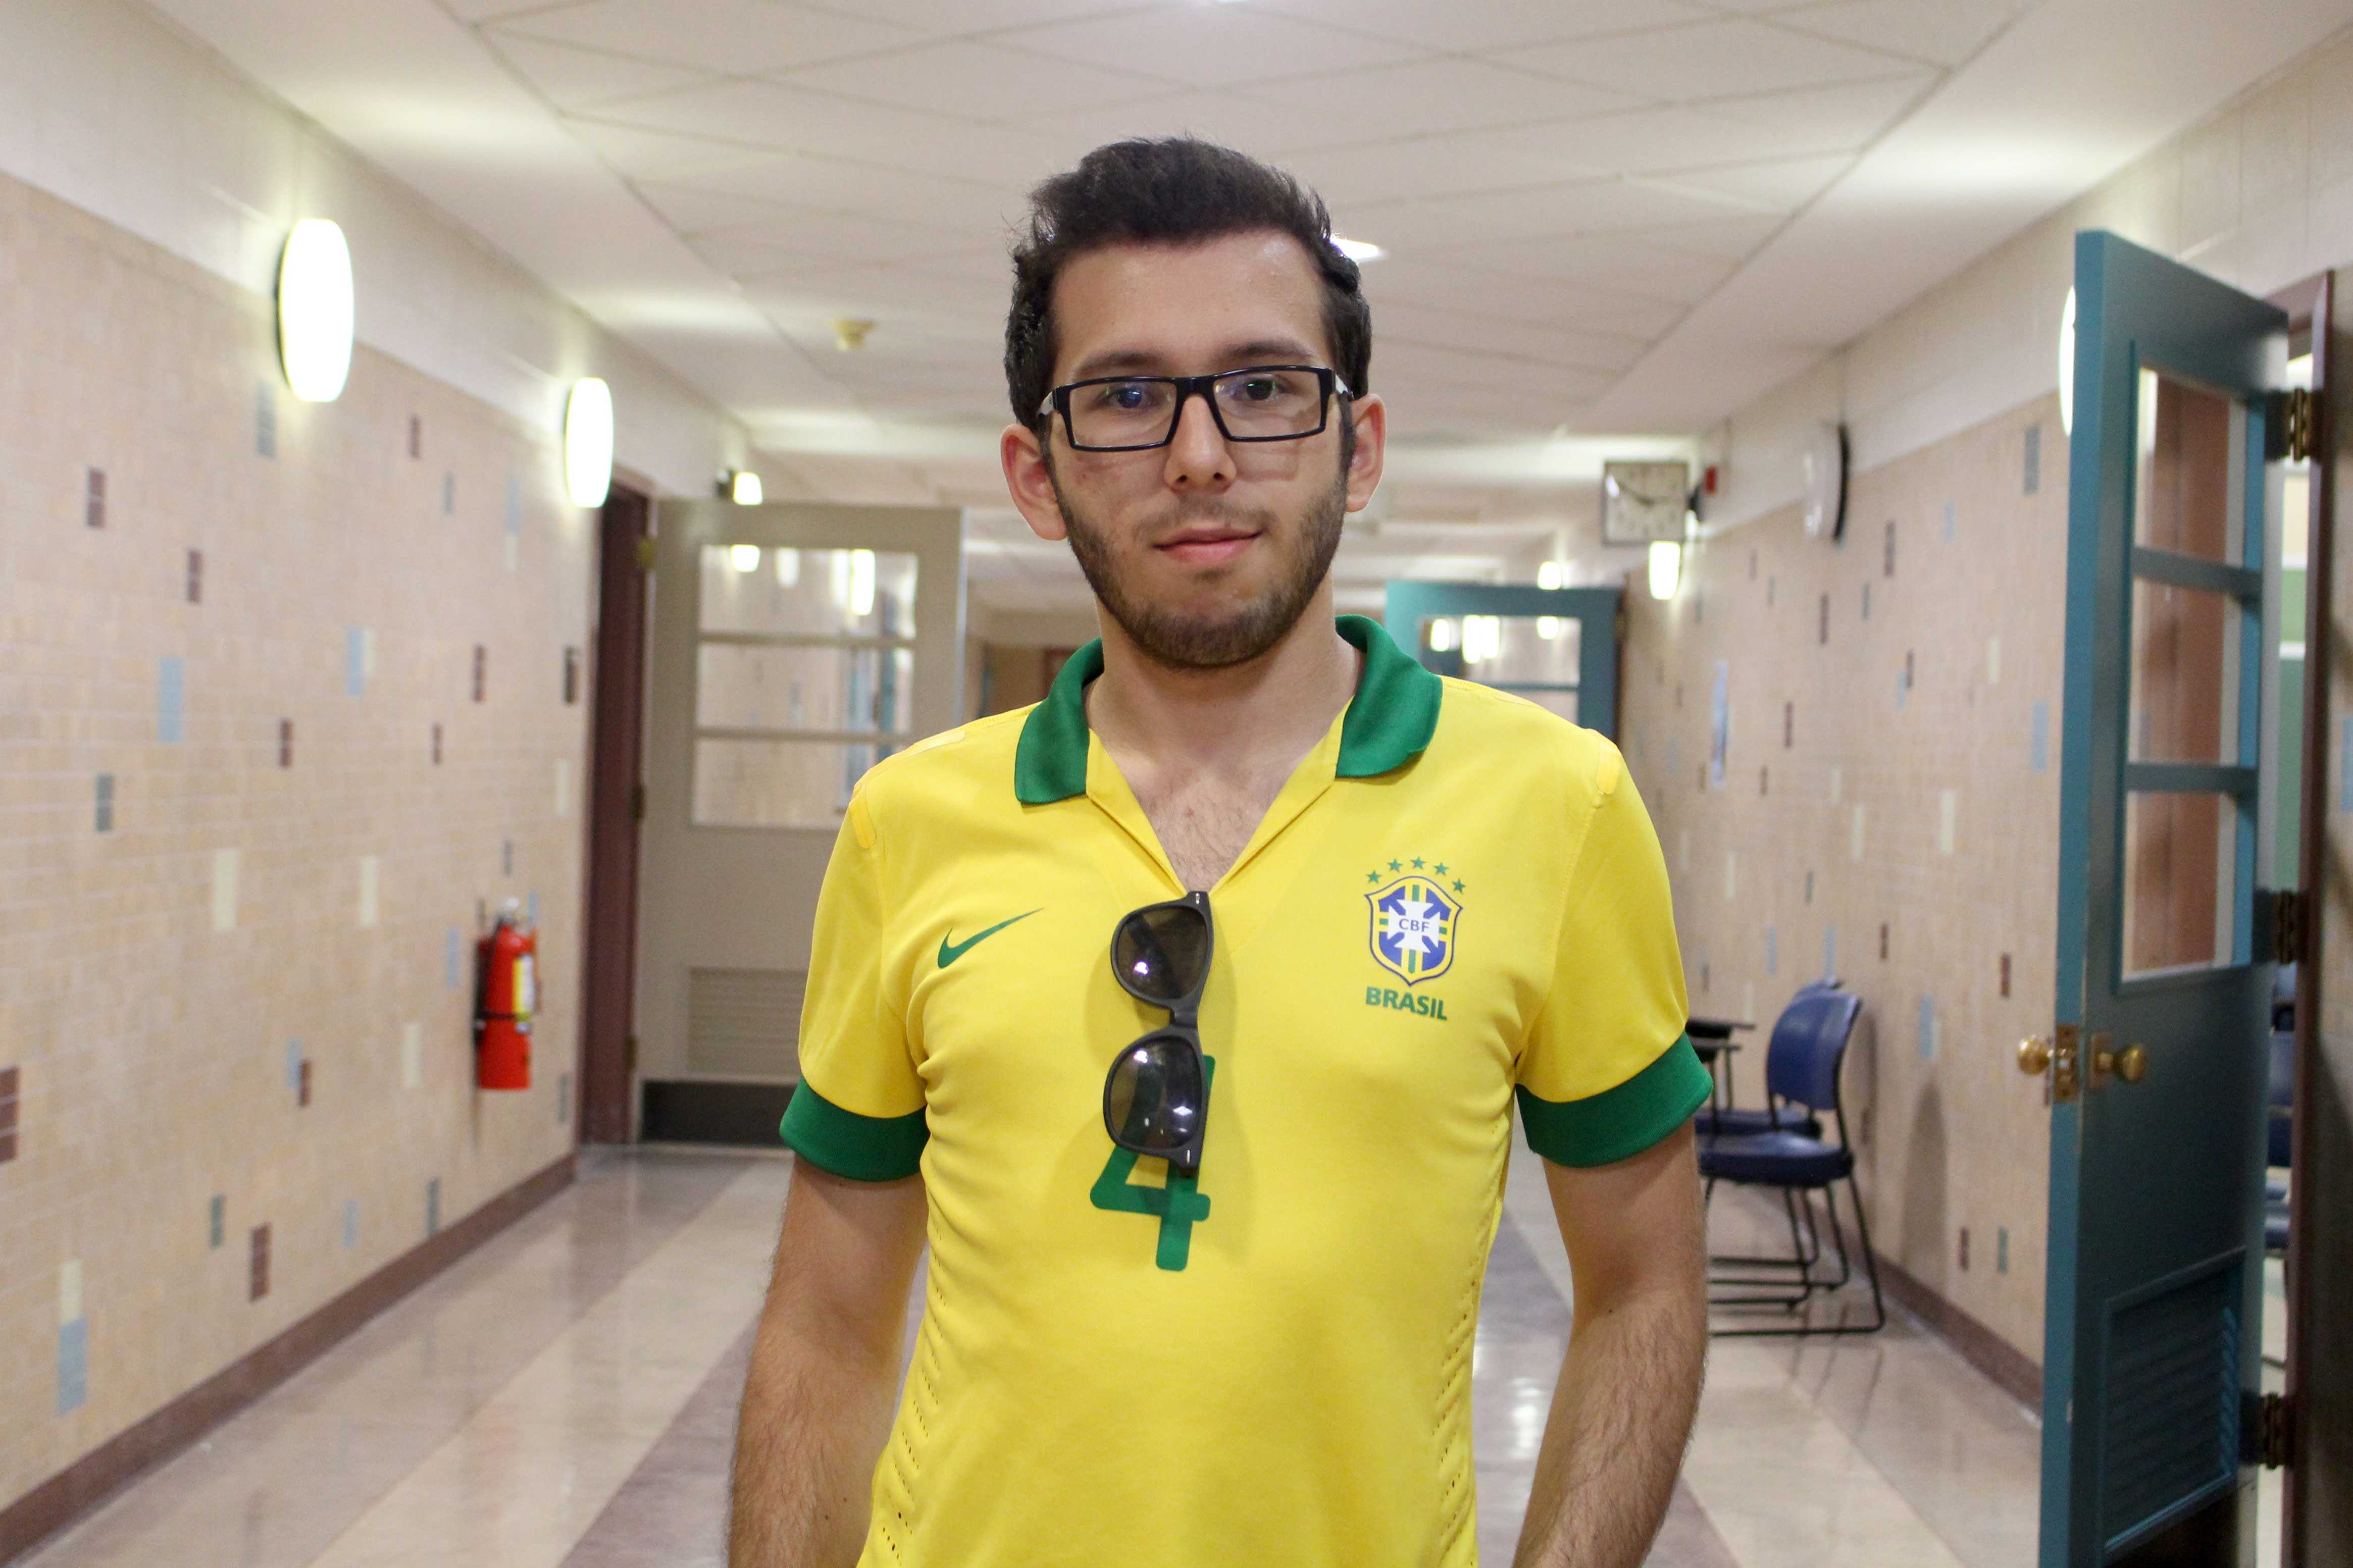 Junior electrical engineering major Carlos Caetano is a Brazillian student studying abroad at UTEP.